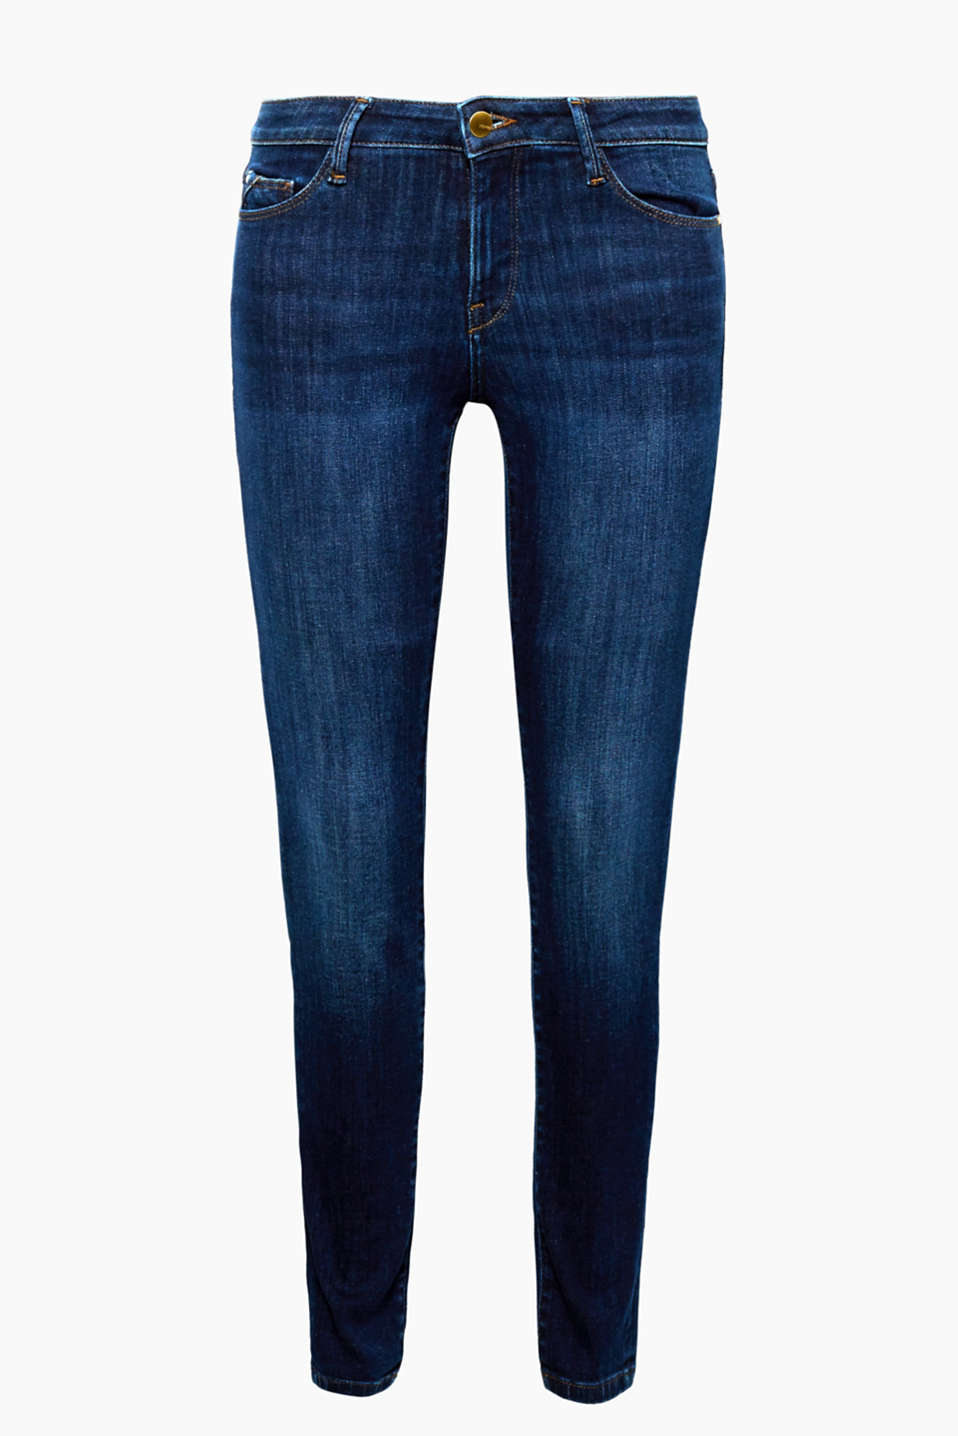 Skin-tight and yet mega comfy: these extremely stretchy, skinny jeans with gold-coloured details!